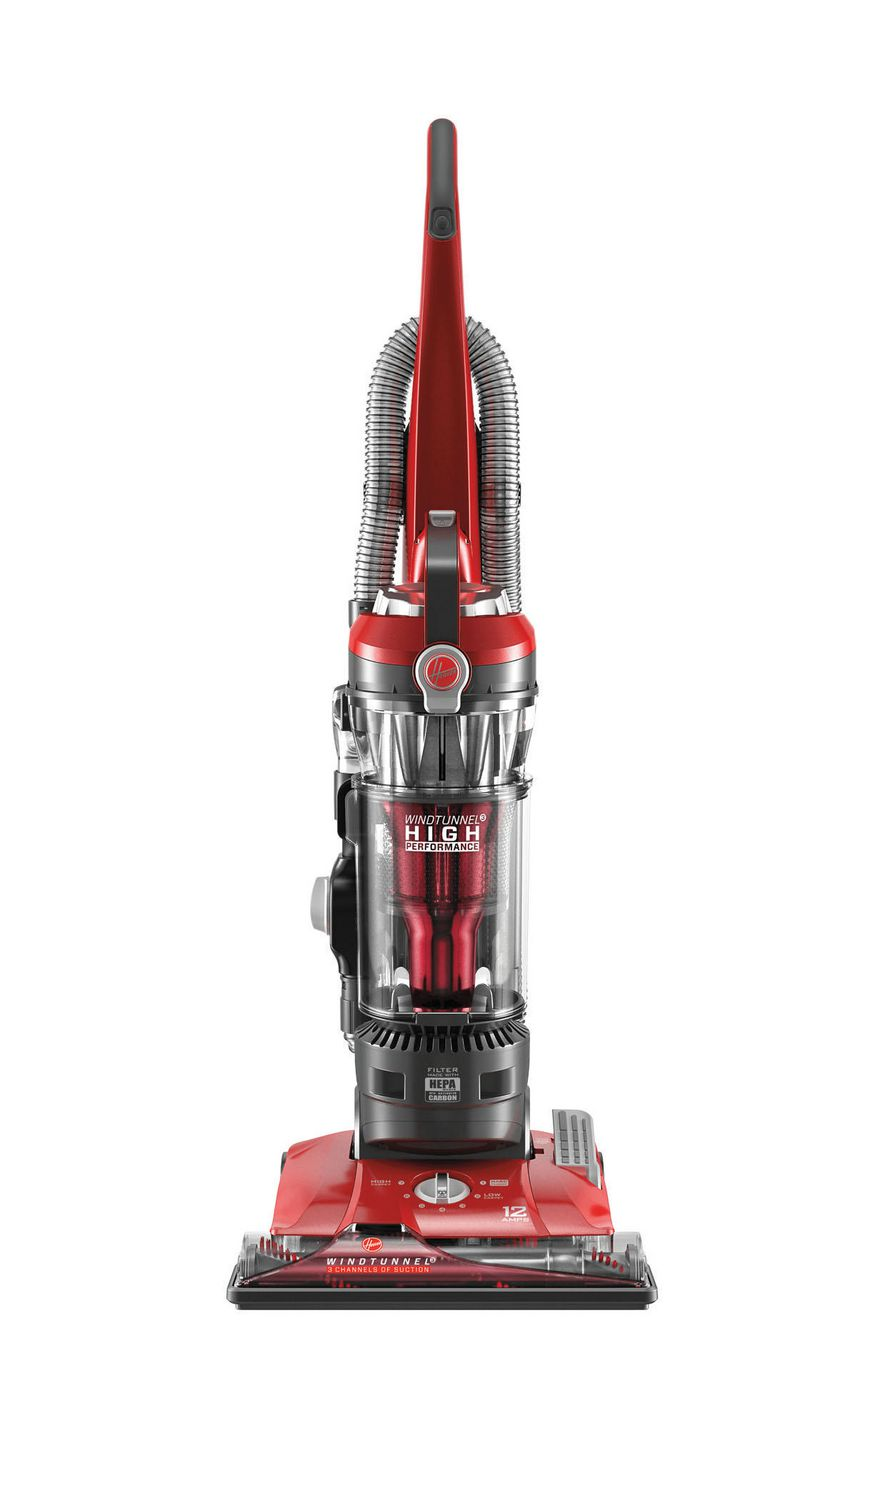 Hoover Windtunnel 174 3 High Performance Upright Vacuum